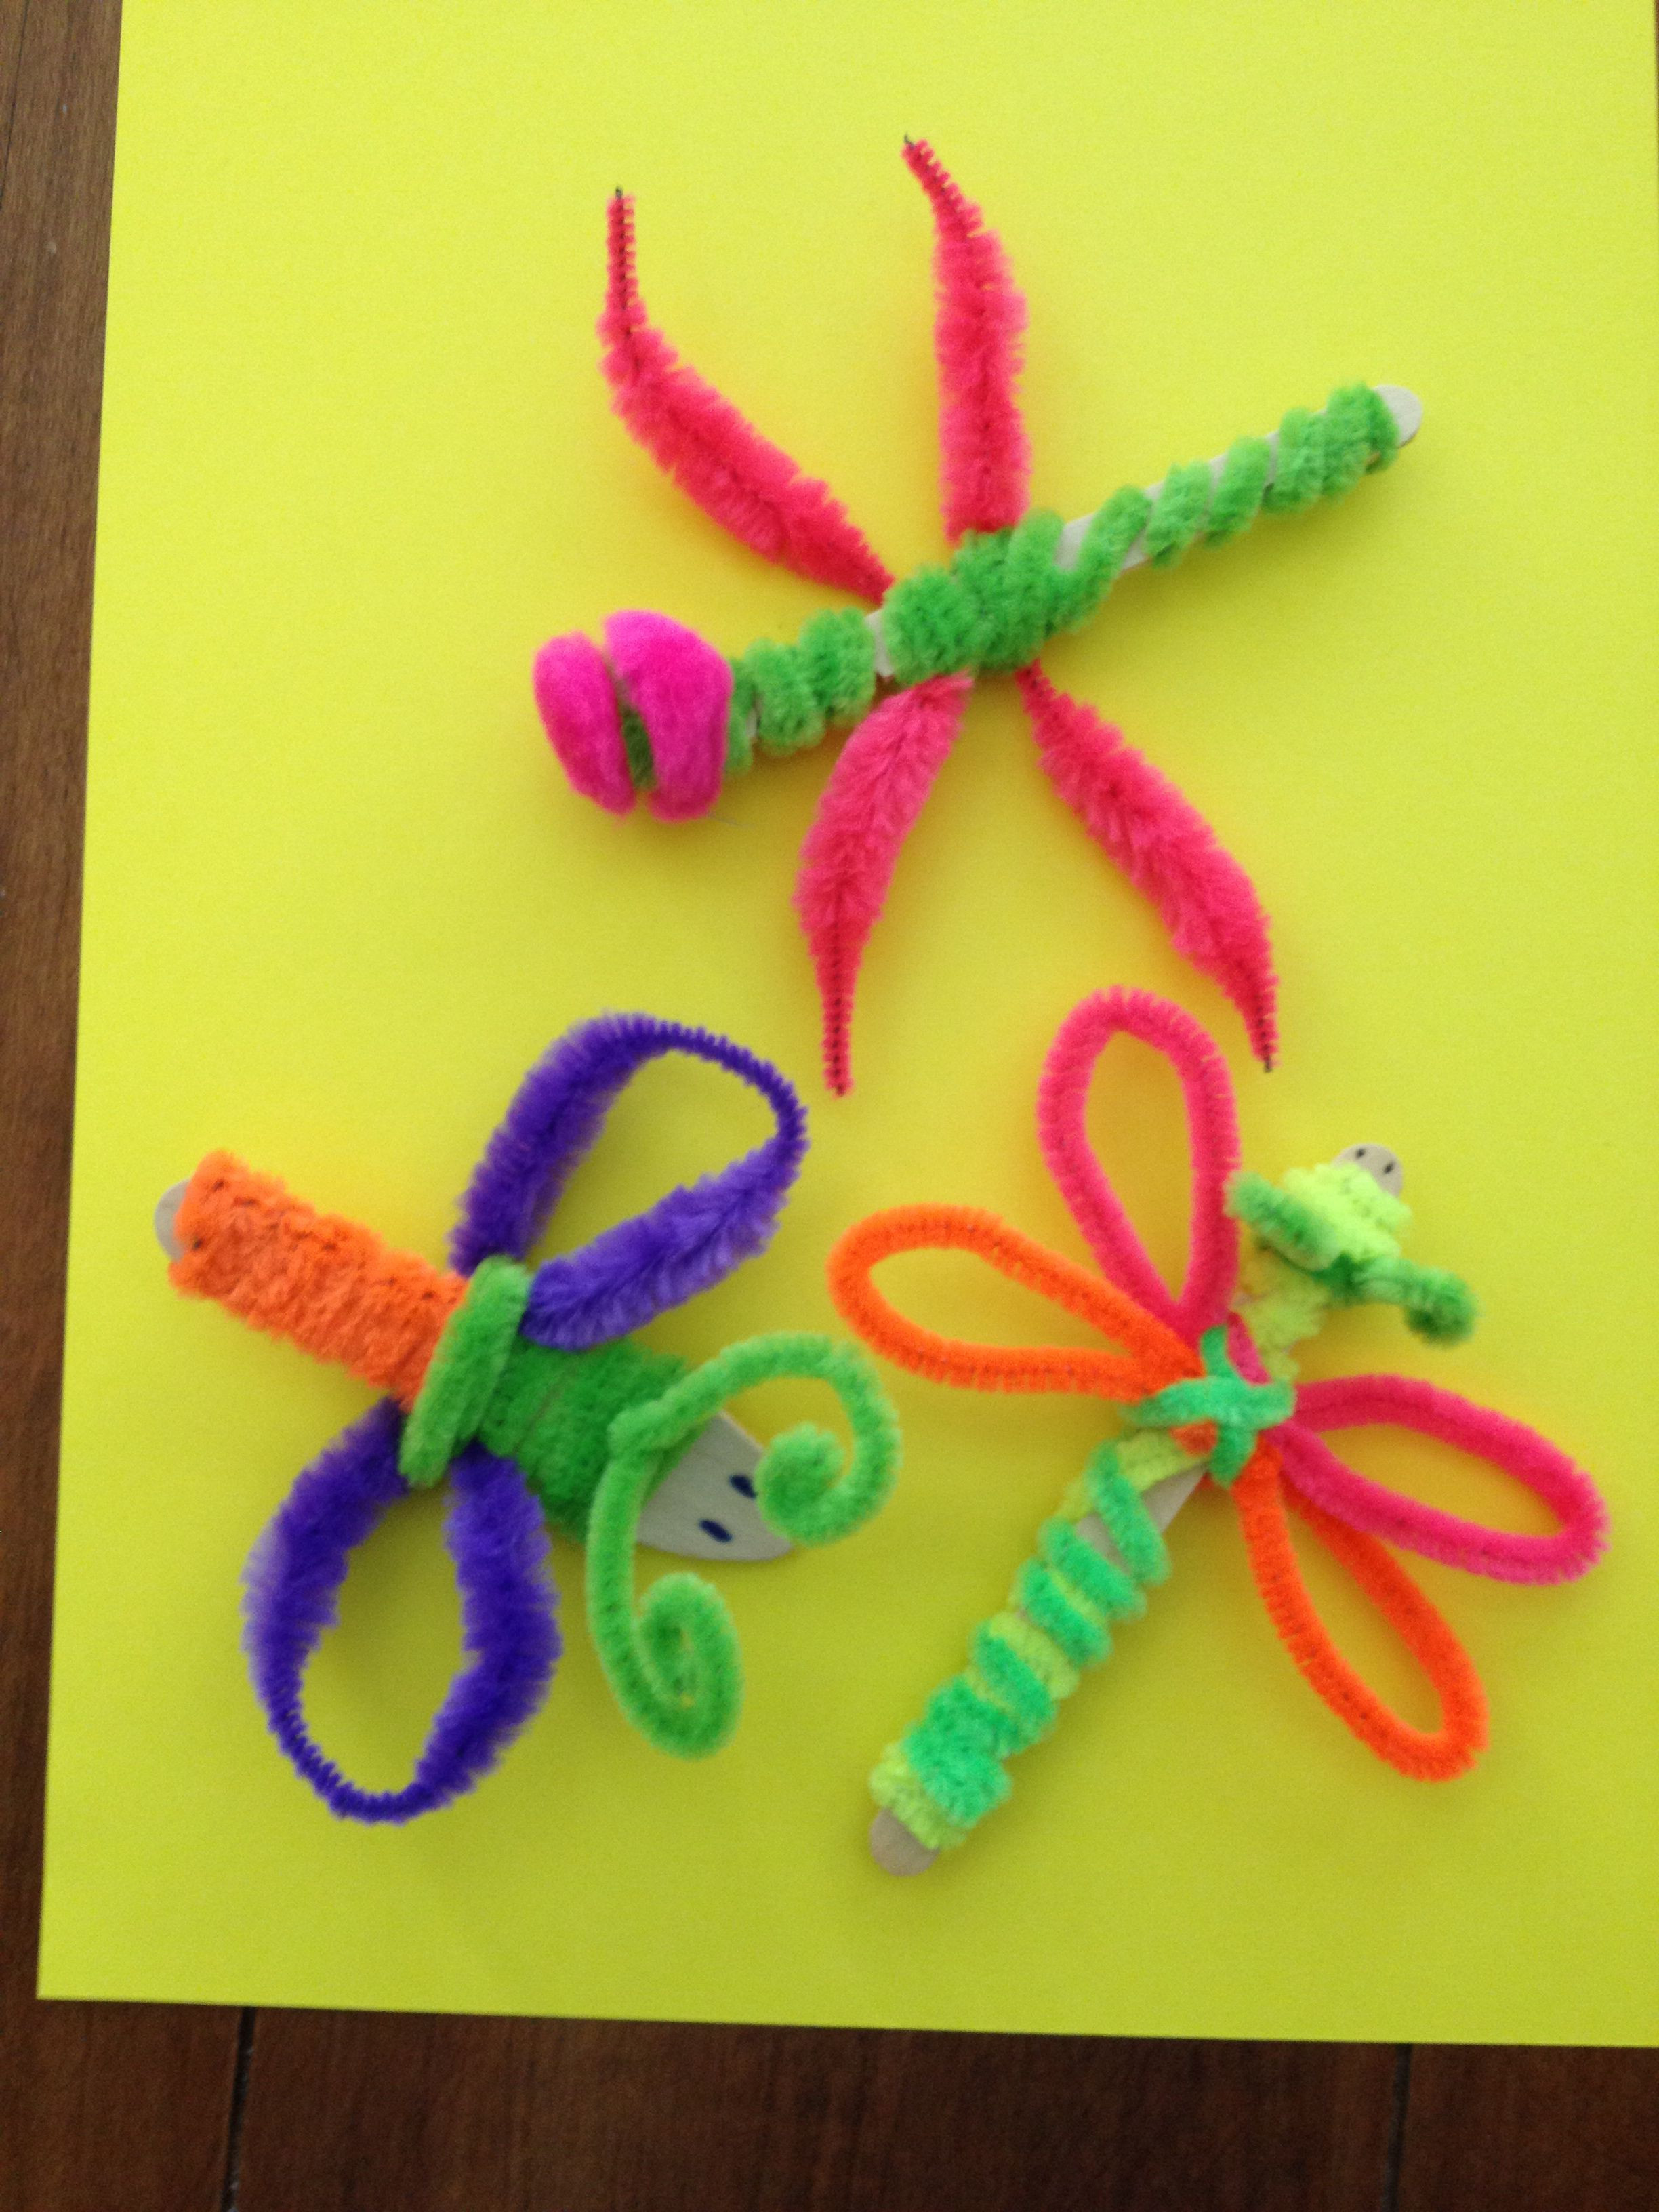 Crafts With Kids  Pipe cleaners and Popsicle stick bugs I used a notched